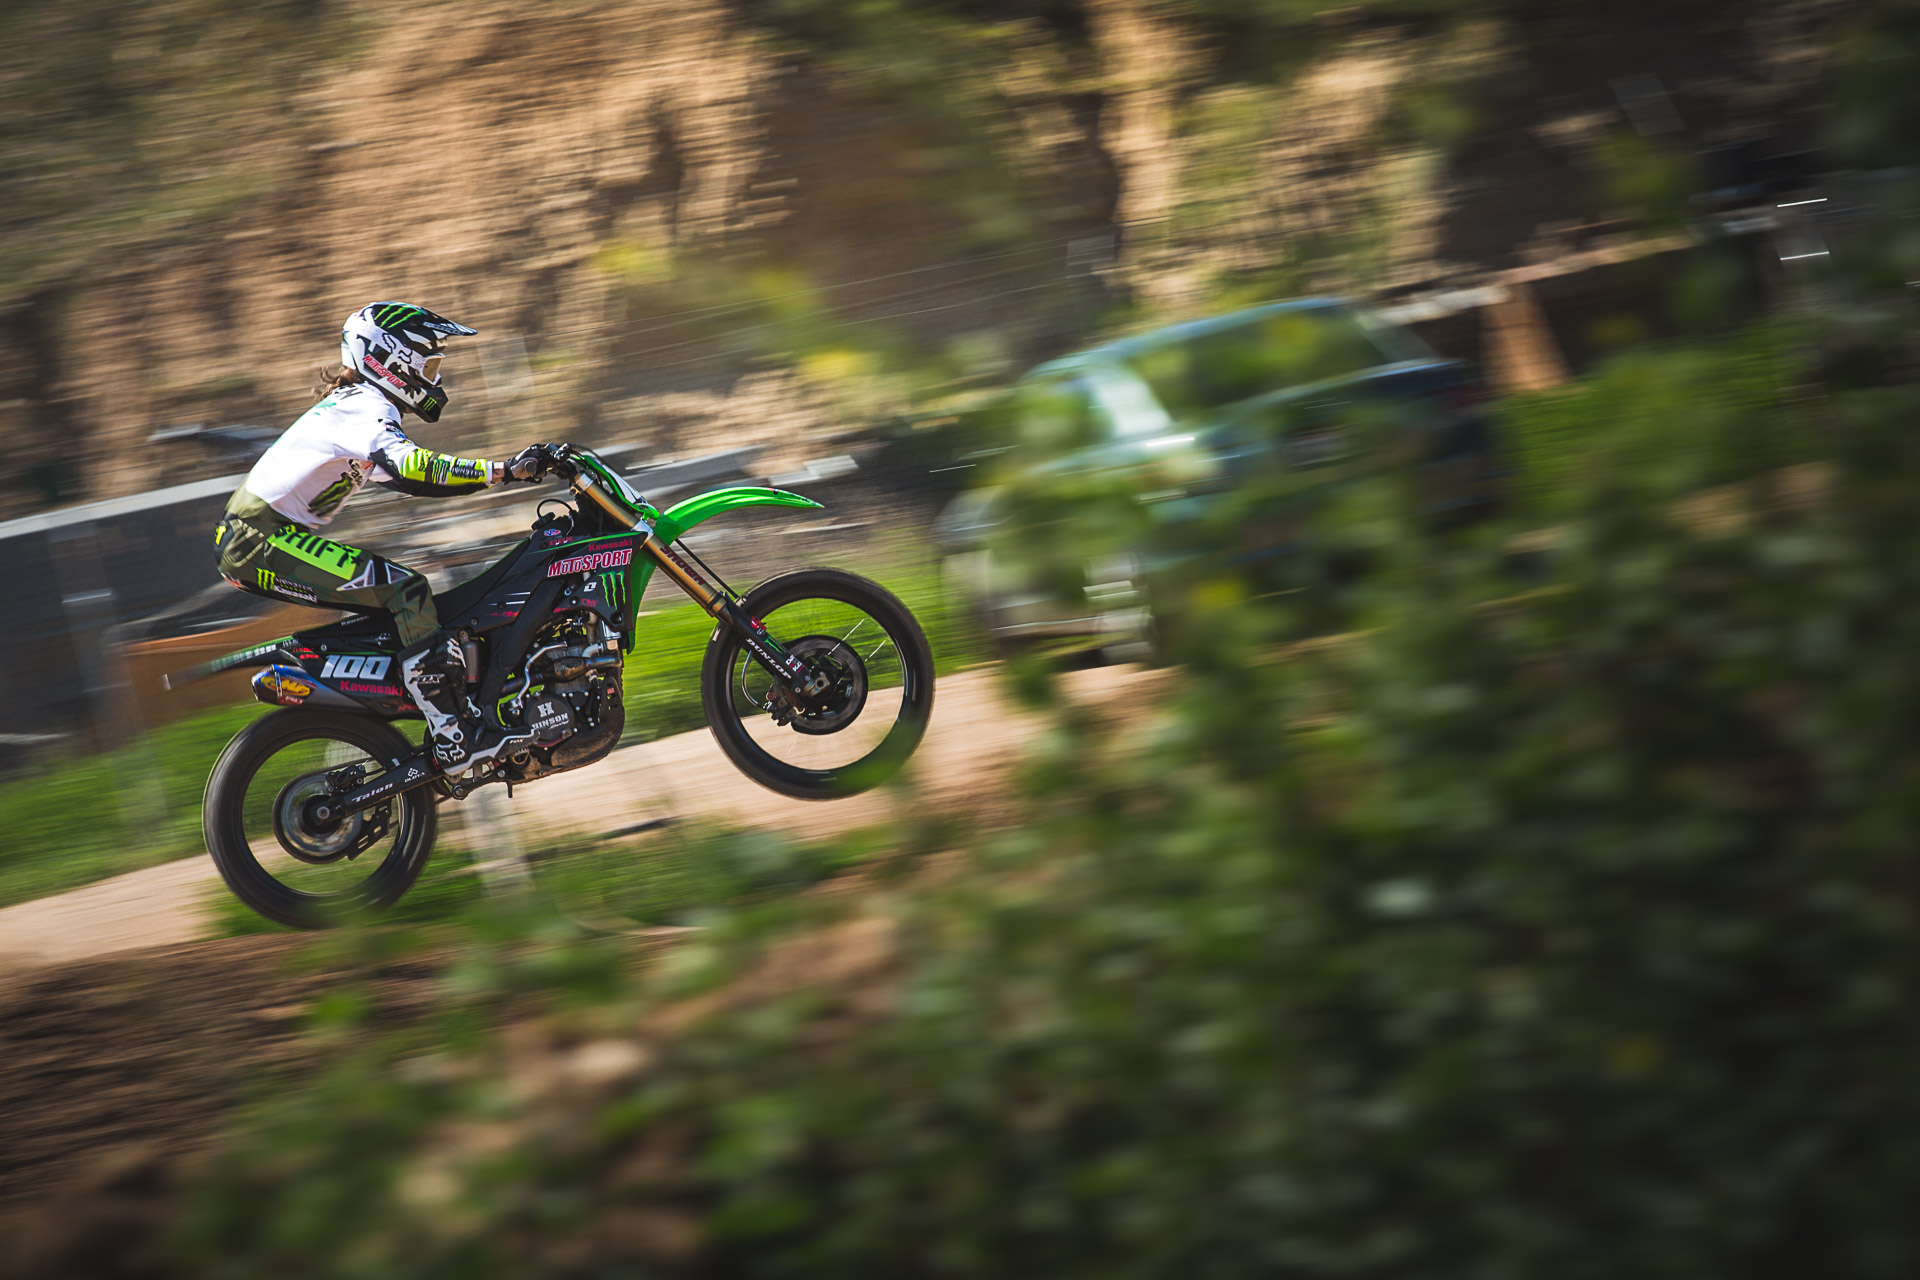 josh_hansen_photo_jimmy_Bowron_3610.jpg